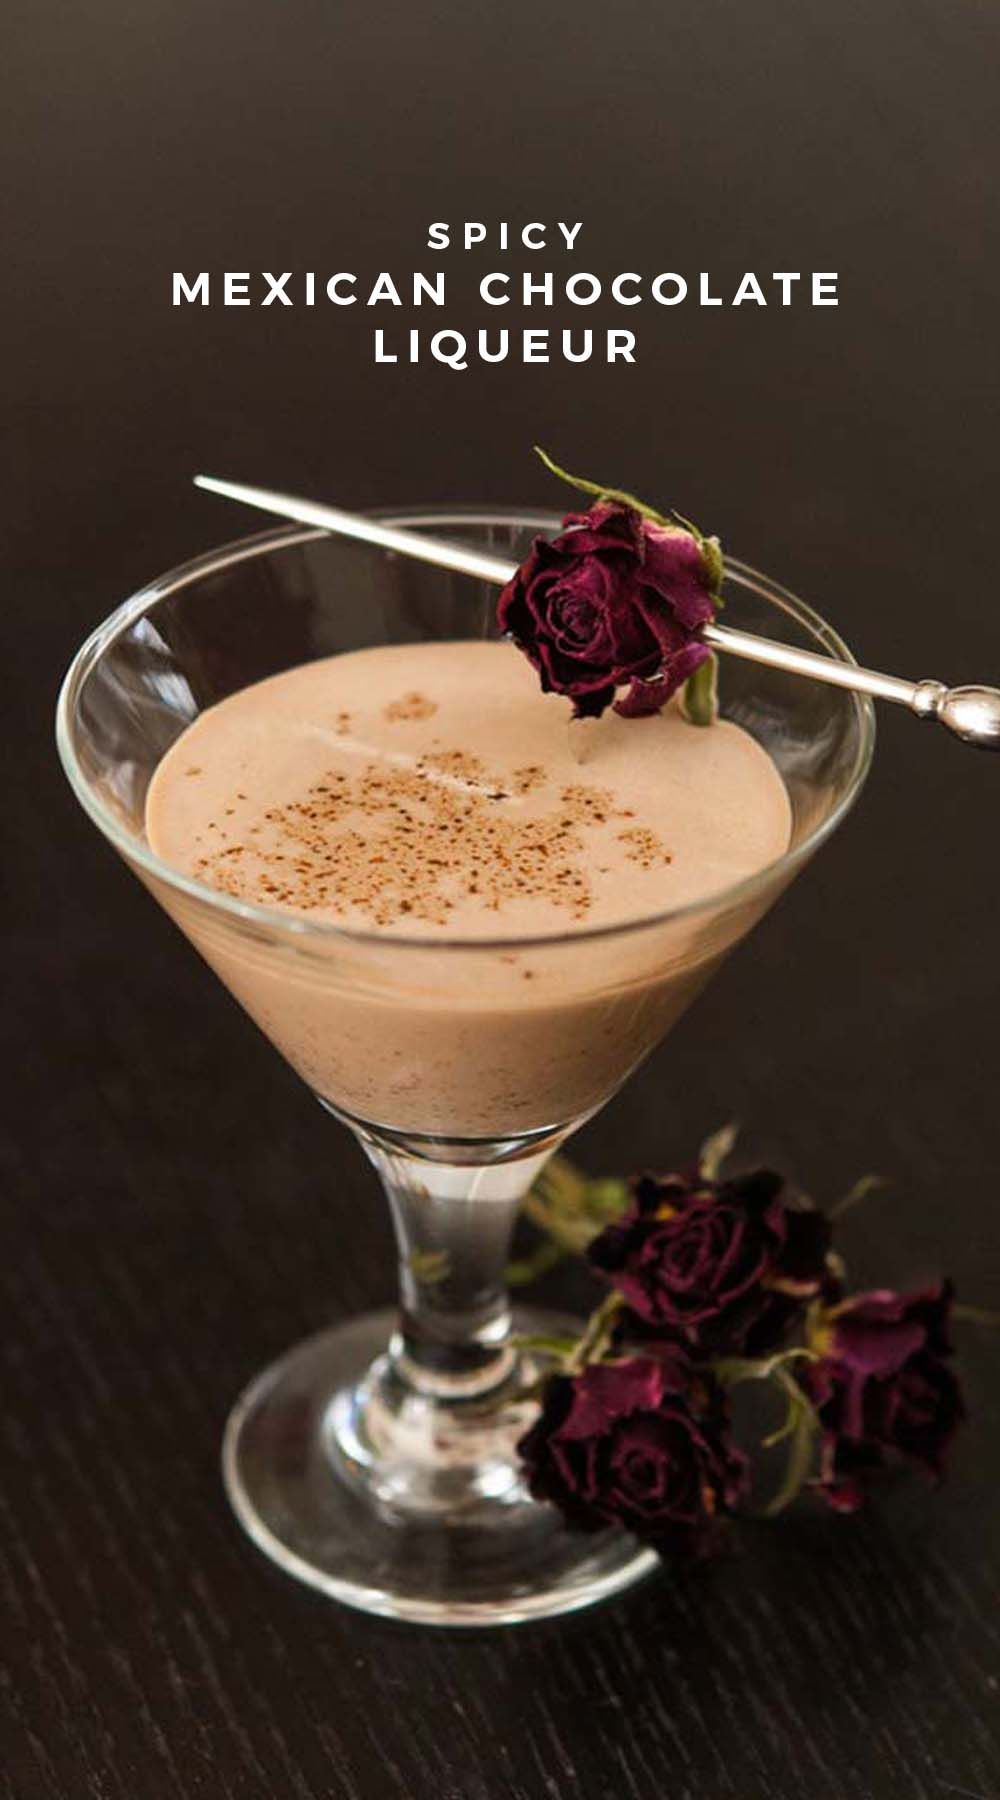 Spicy Mexican Chocolate Liqueur In 2021 Chocolate Liqueur Mexican Chocolate Chocolate Cocktail Recipes